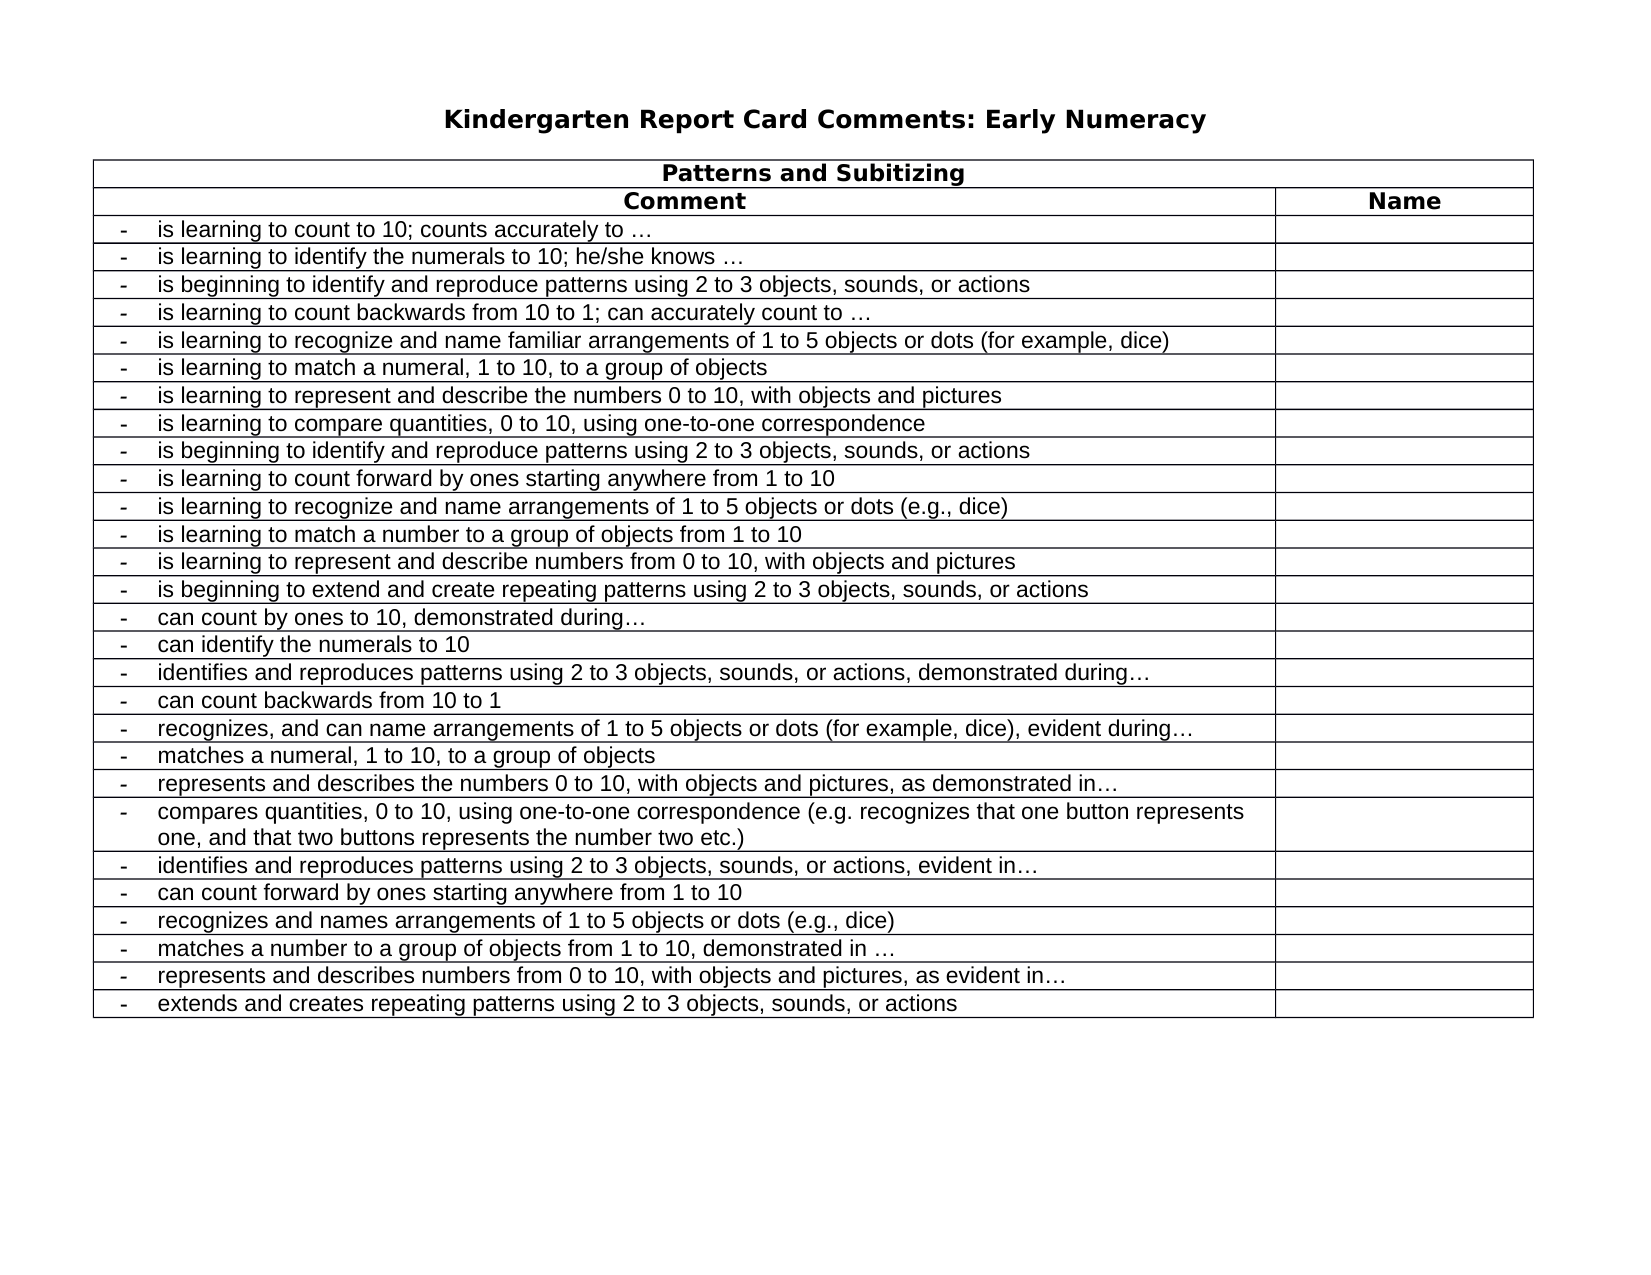 KG Report Card Comments for Math Resource Preview